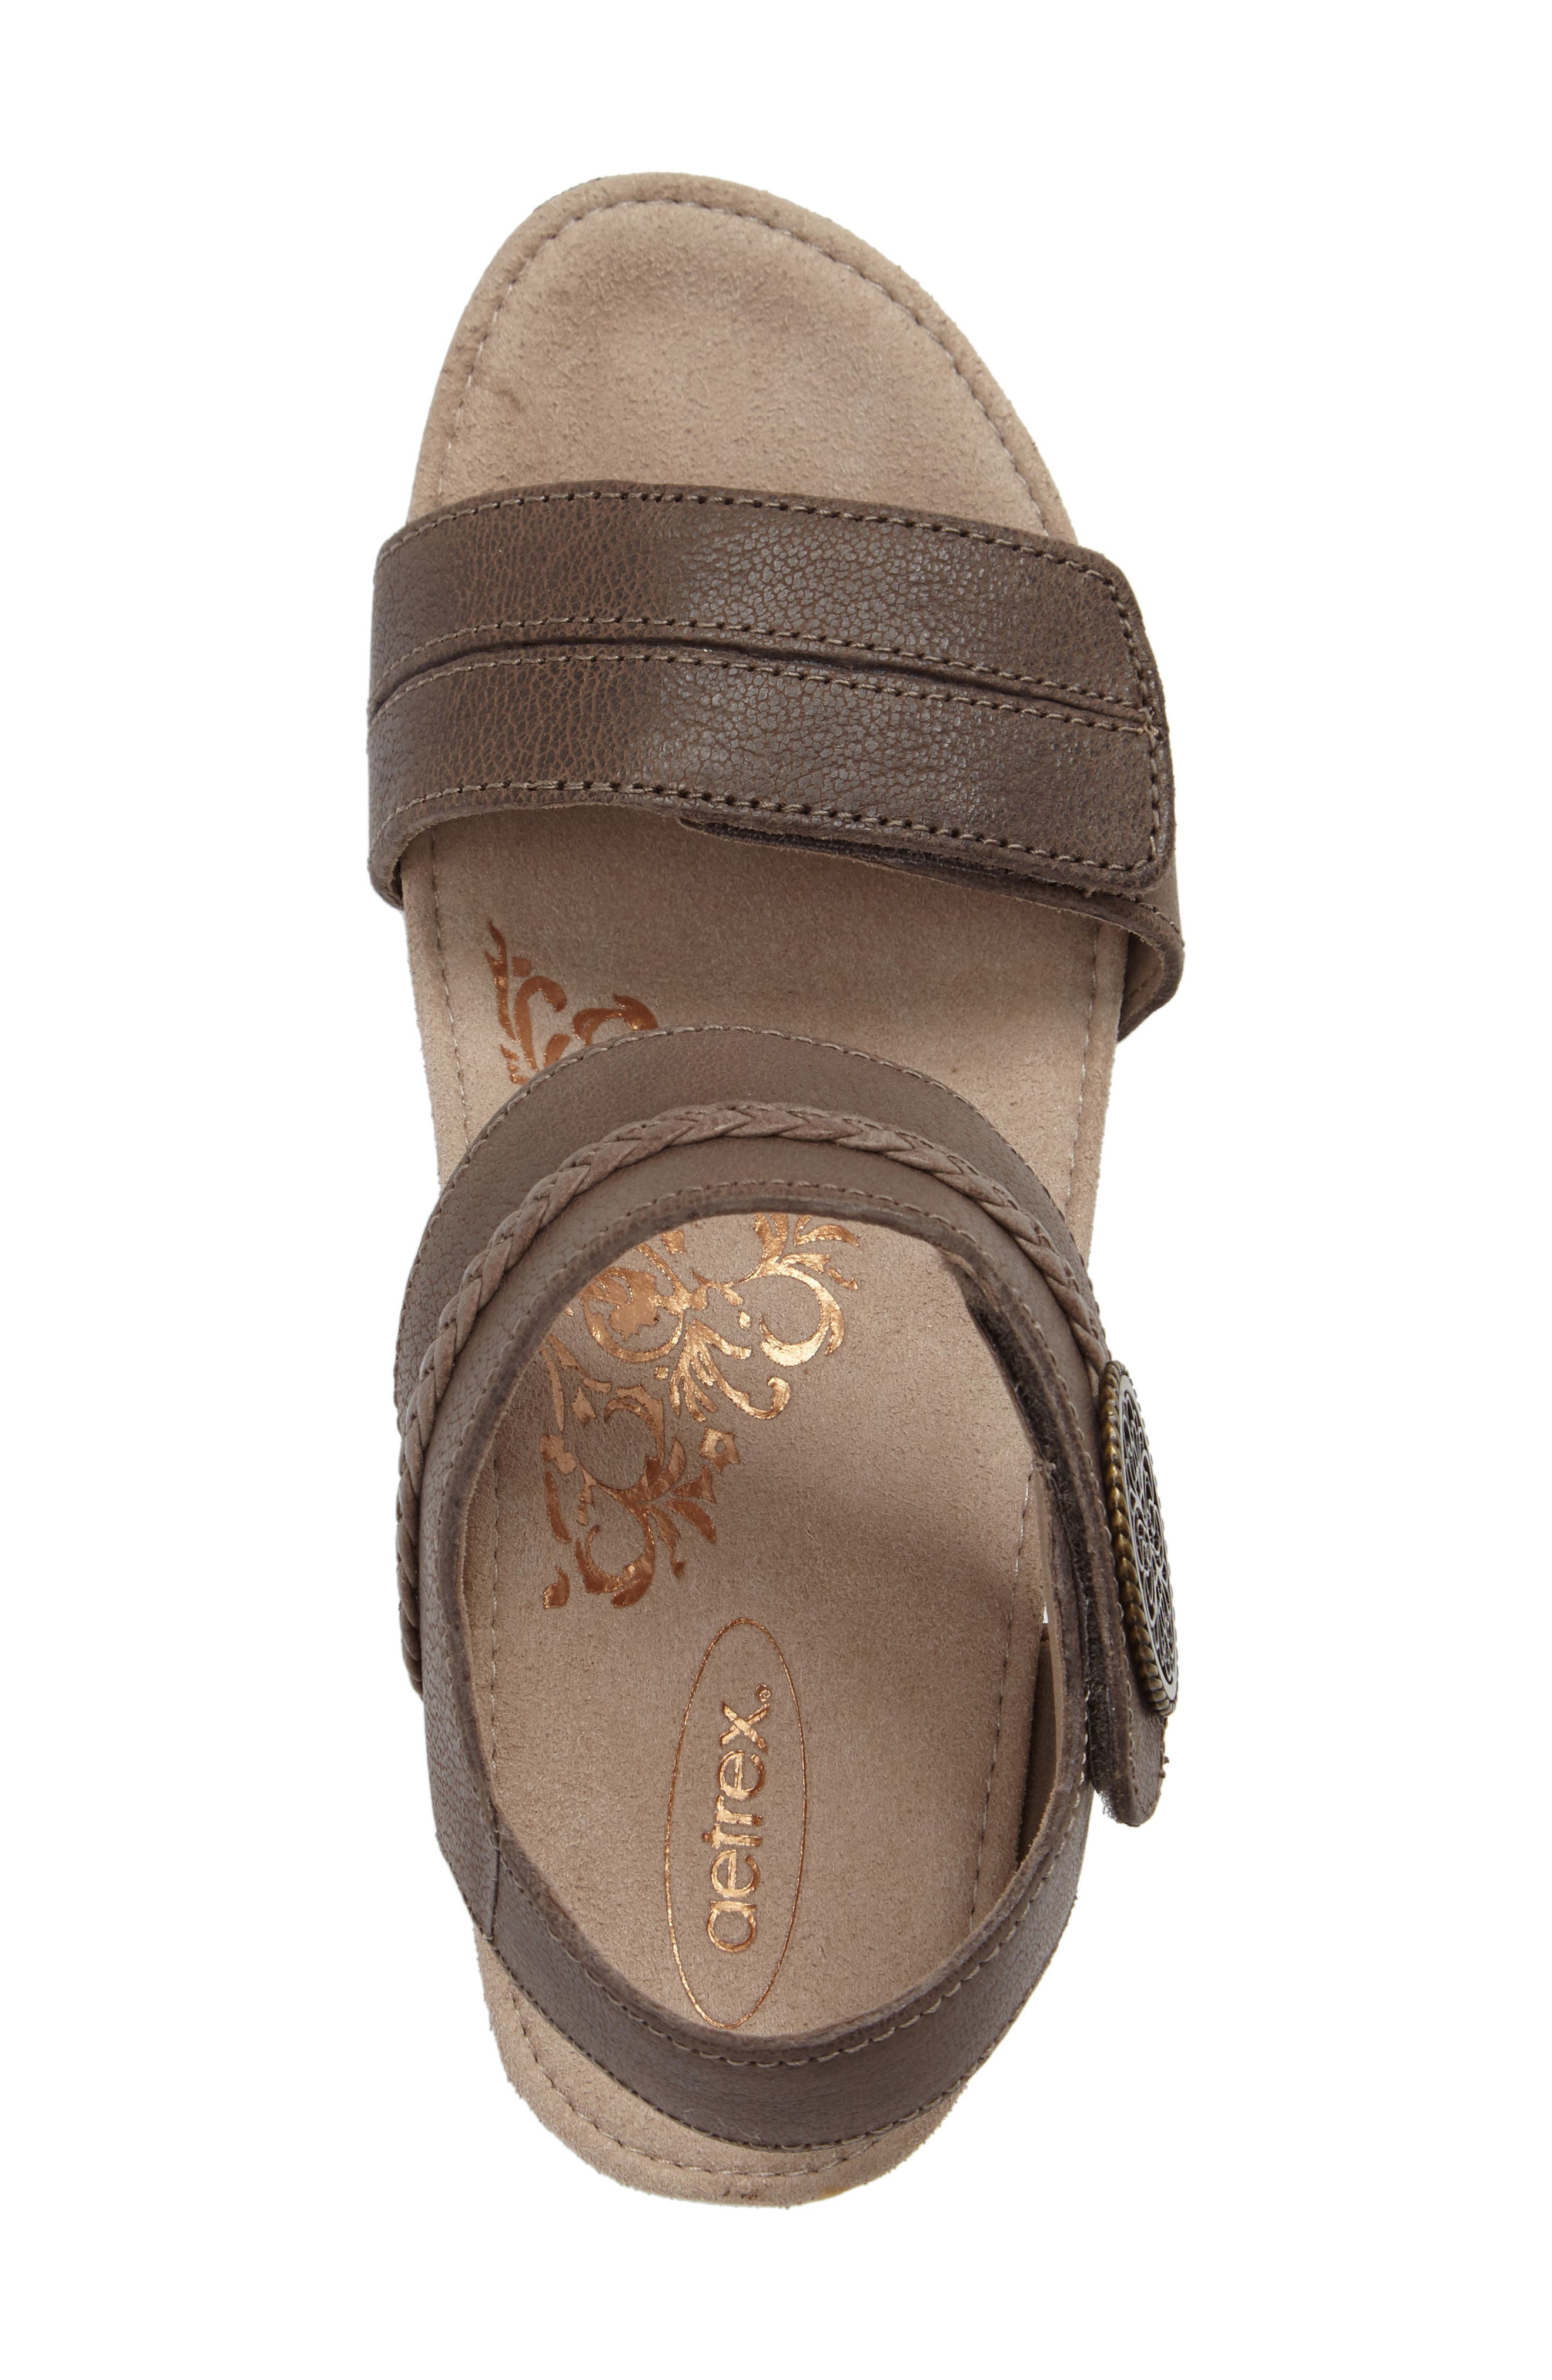 'Arielle' Leather Wedge Sandal,                             Alternate thumbnail 5, color,                             STONE LEATHER